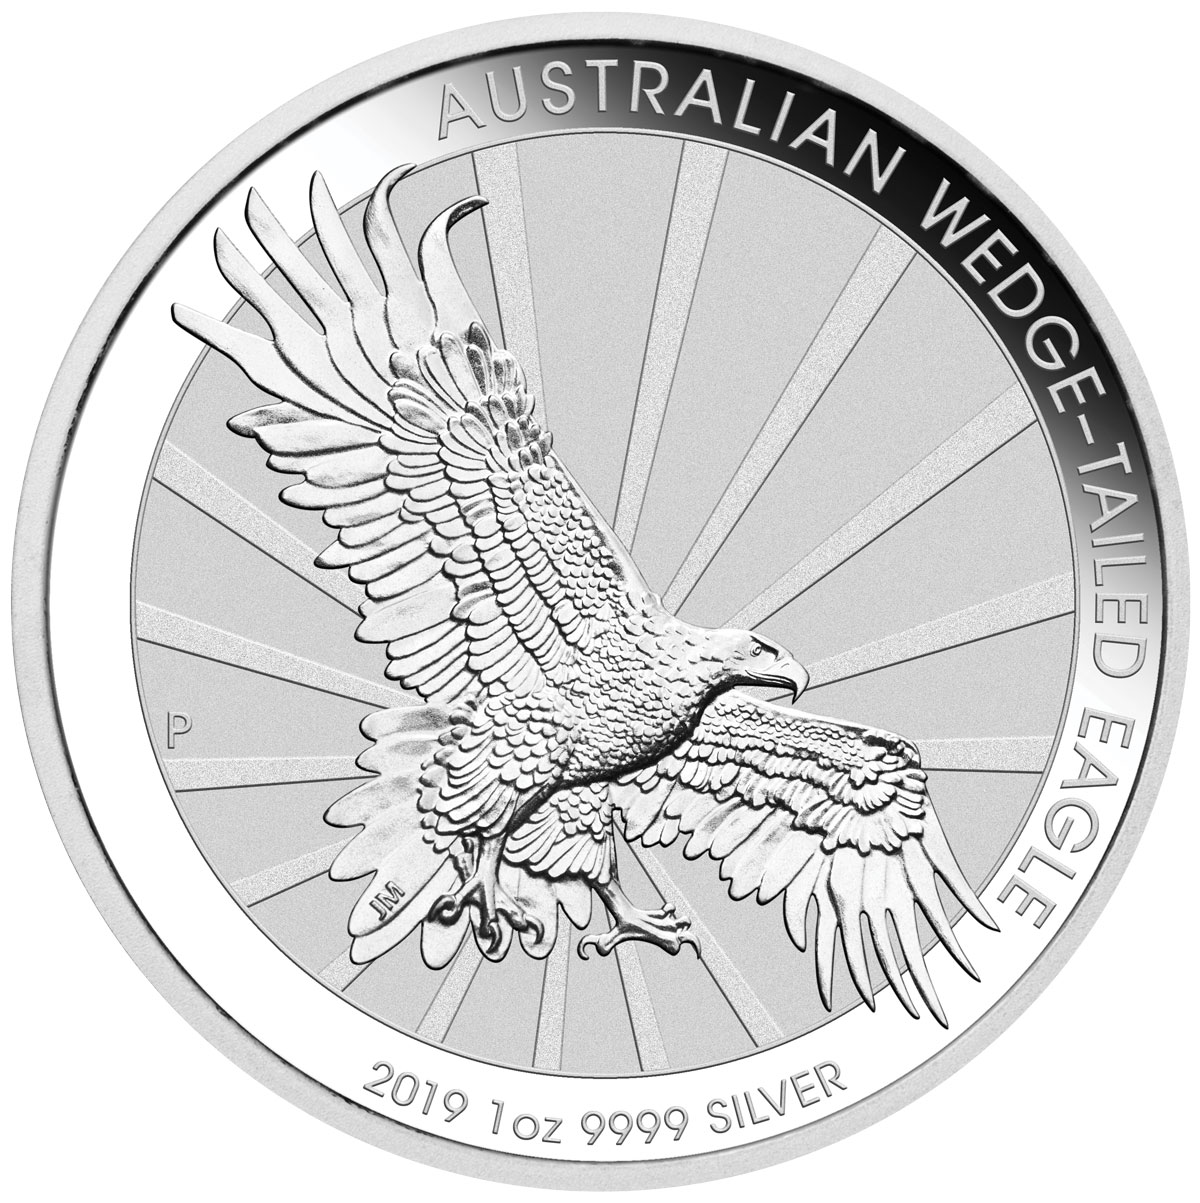 2019-P Australia 1 oz Silver Wedge-Tailed Eagle $1 Coin GEM BU